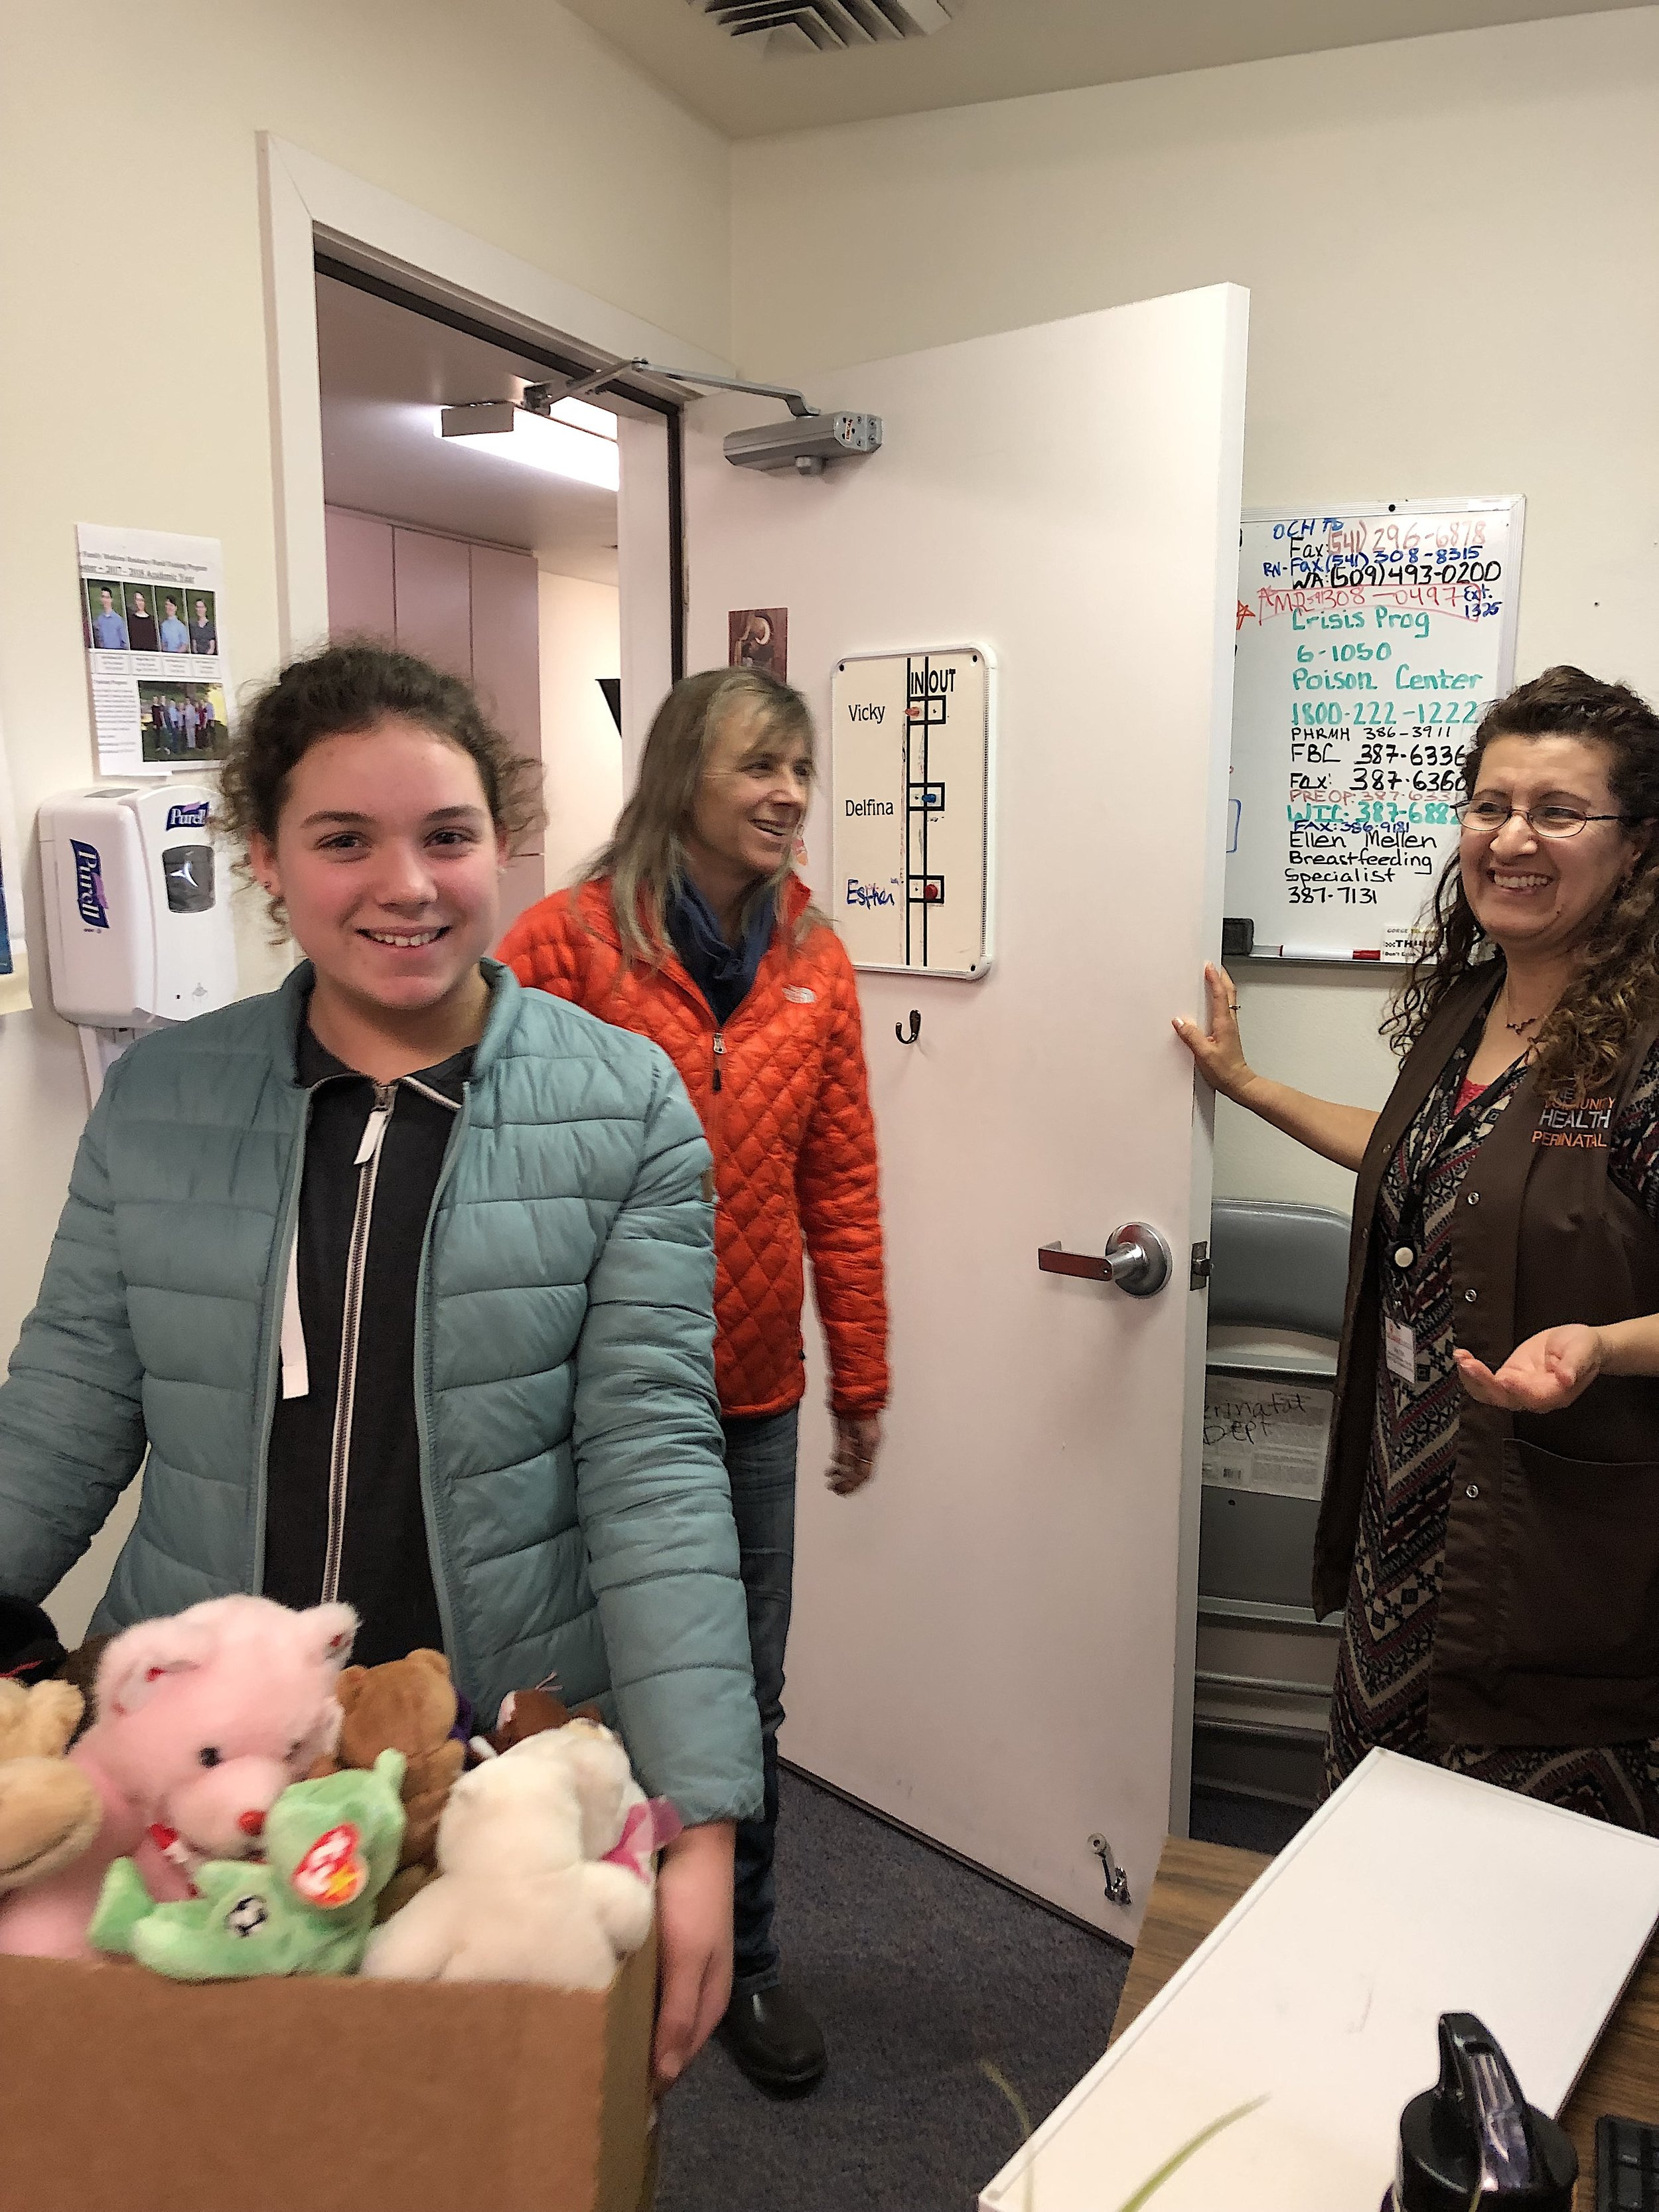 Amy Elliott of White Salmon, Wash., (left), along with her mom, Caroline Elliott (center), drop off a box of stuffed animals to Vicky Valle (right), certified community health worker at One Community Health.